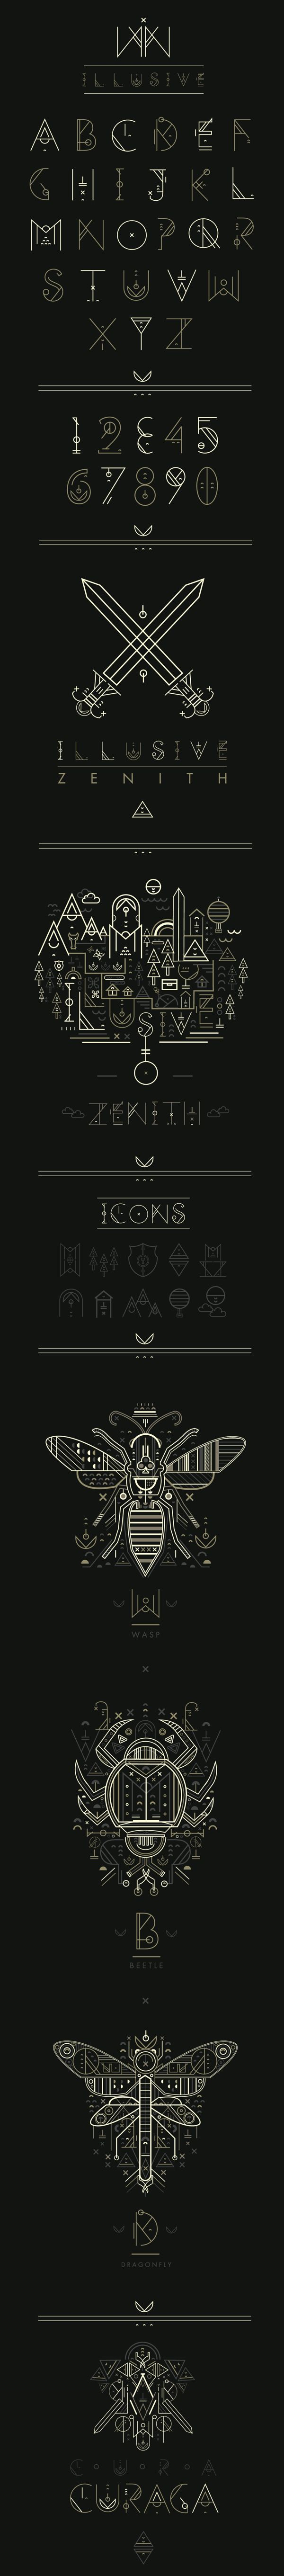 Design by studiosap, via Behance   #typography #design #alphabet The shapes and lines really go together and I love everything the typeface offers.